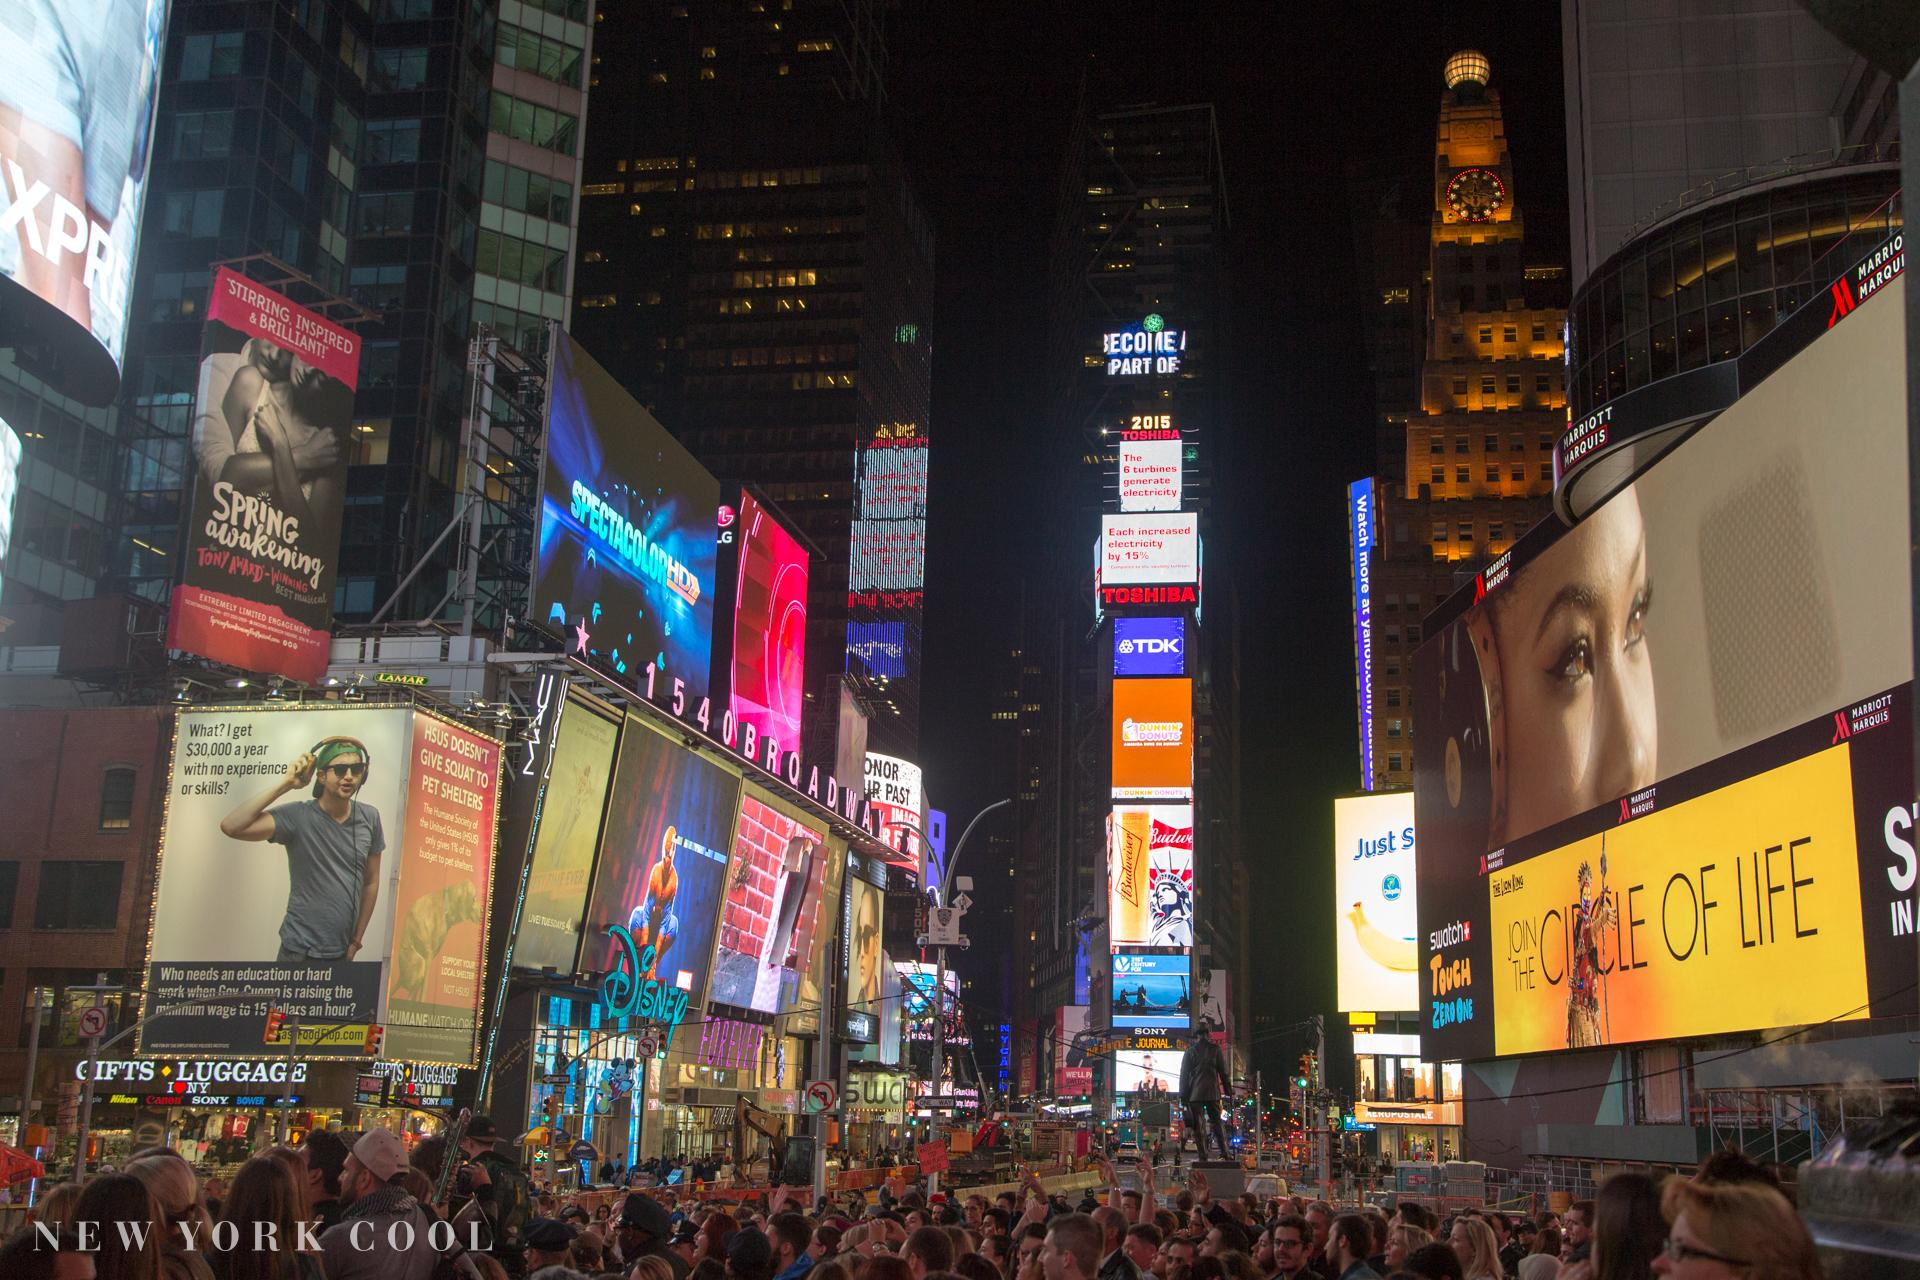 new_york_cool_visitar_times_square_6.jpg